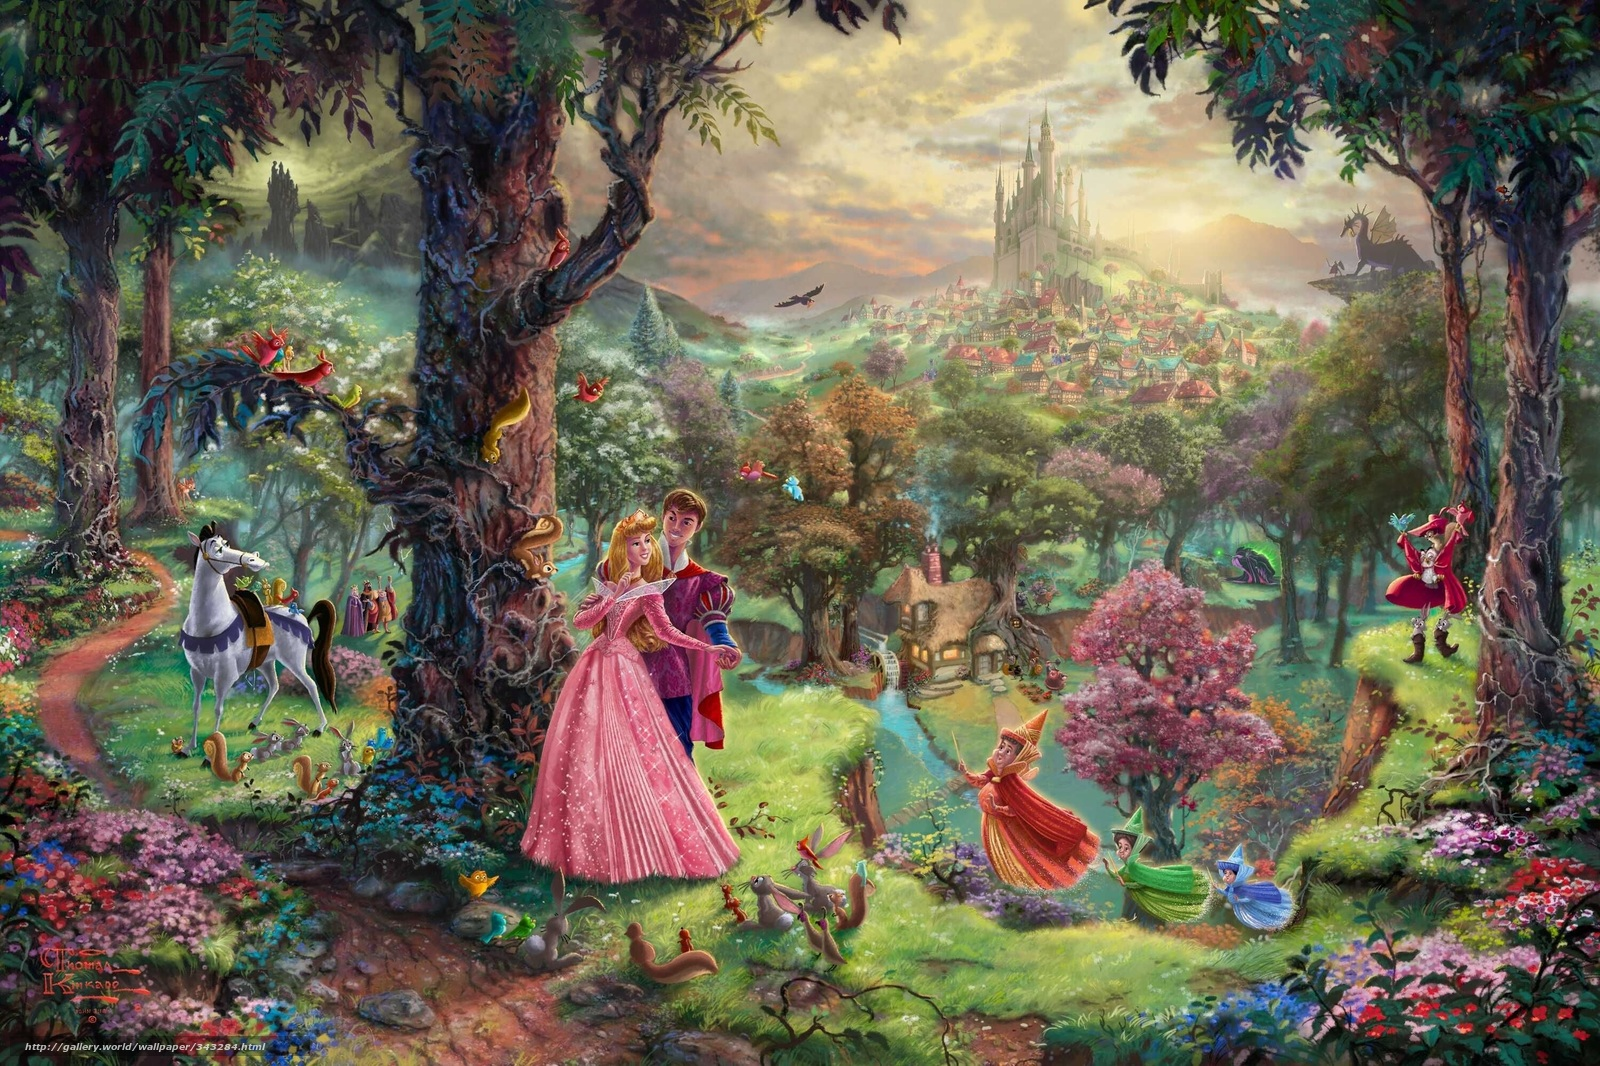 Download wallpaper Thomas Kinkade painting Sleeping 1600x1066